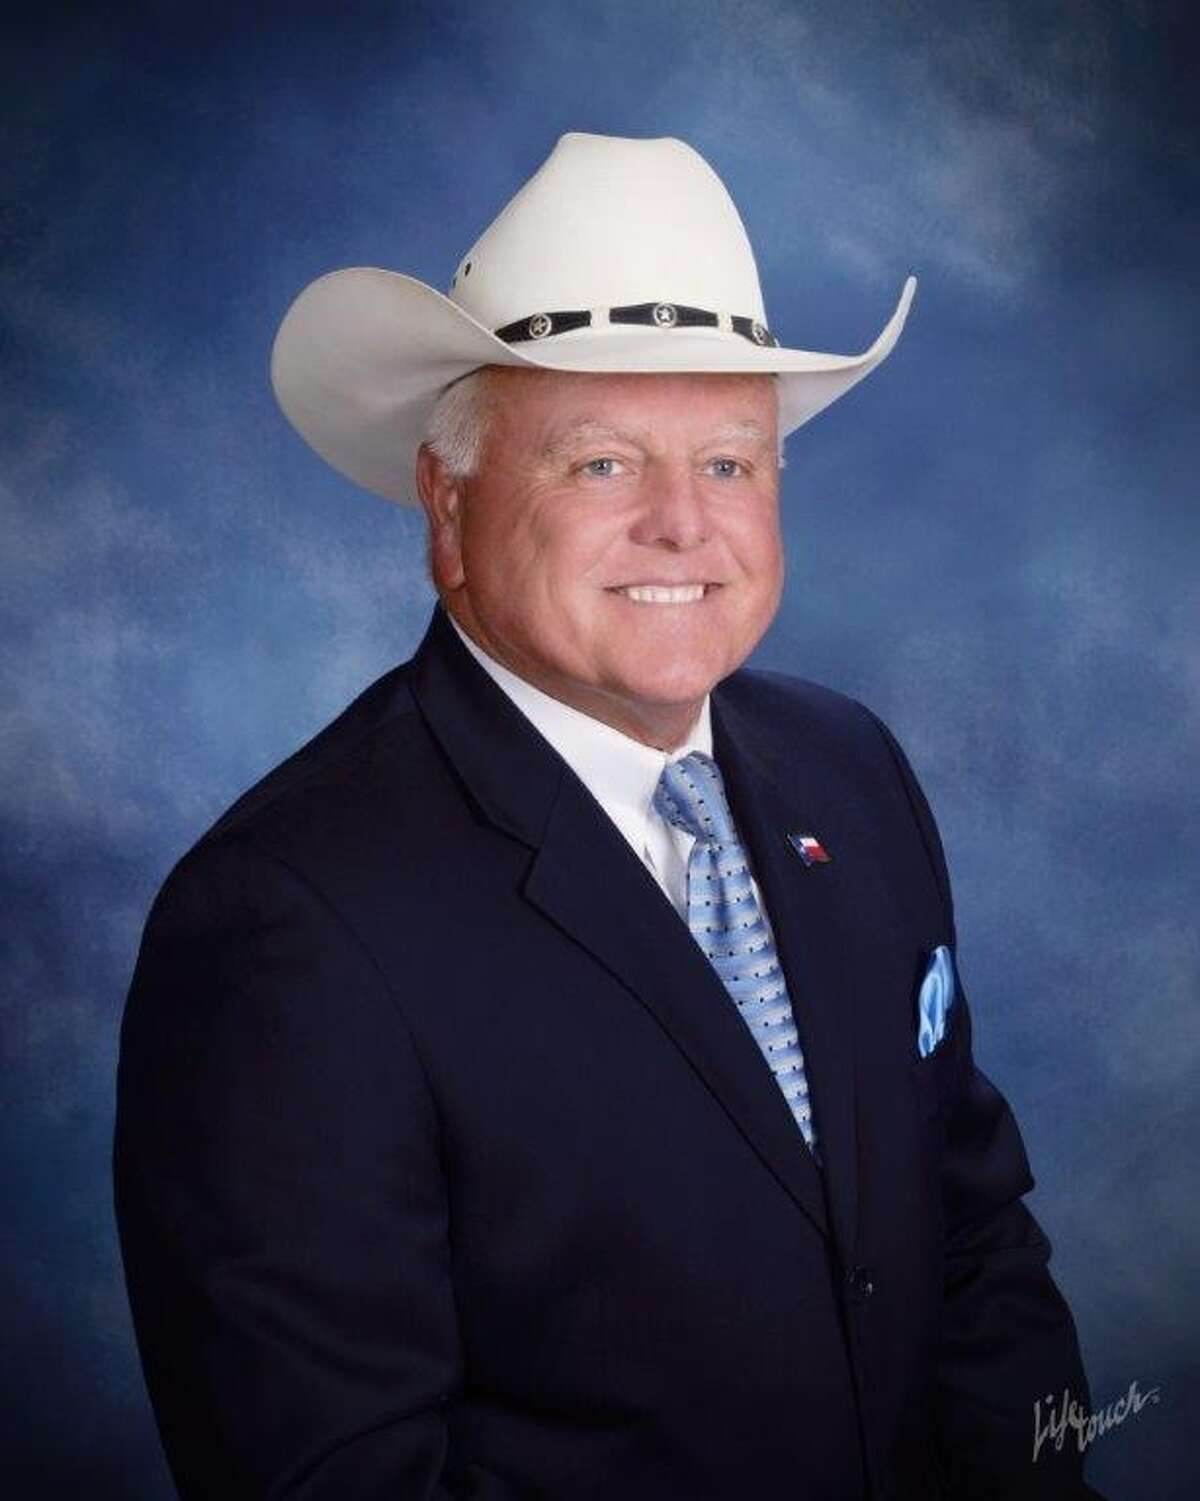 Sid Miller, Texas' Agriculture commissioner, shared a story on his Facebook page that has been debunked as a false story. See some of his other controversies and scandals